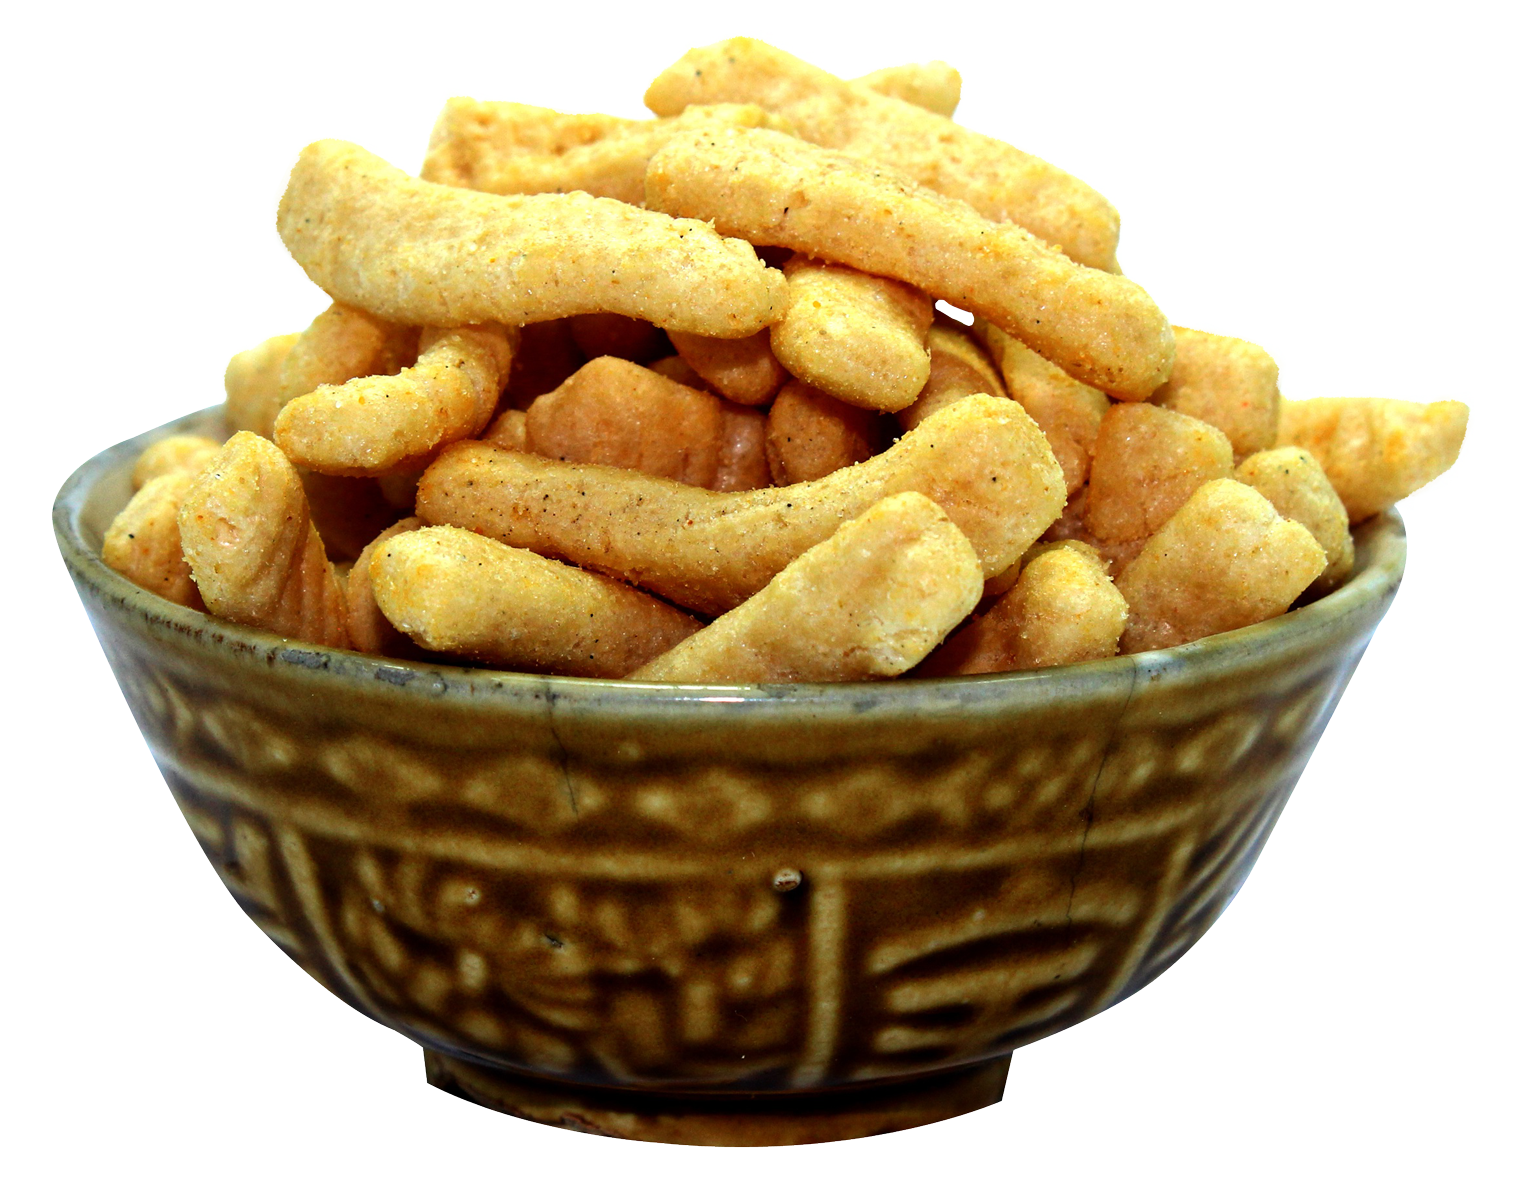 Snack Bowl PNG Transparent Image - Food PNG